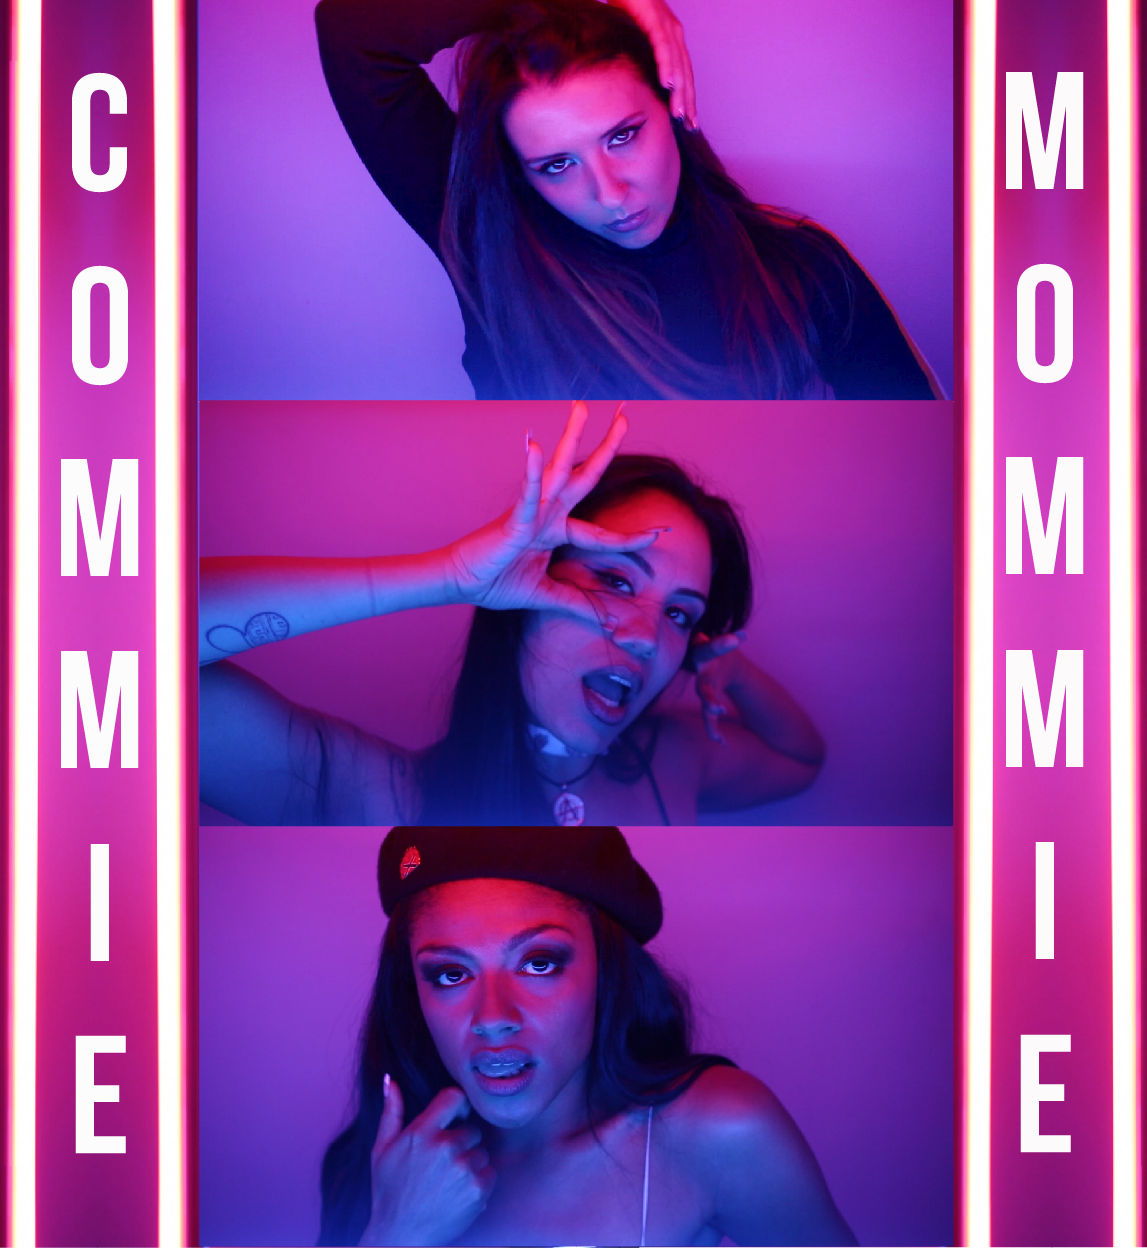 """Nire, Maluca, and Nani Castle's Feminist Anthem """"Commie Mommie"""" Goes Global With Six New Remixes"""